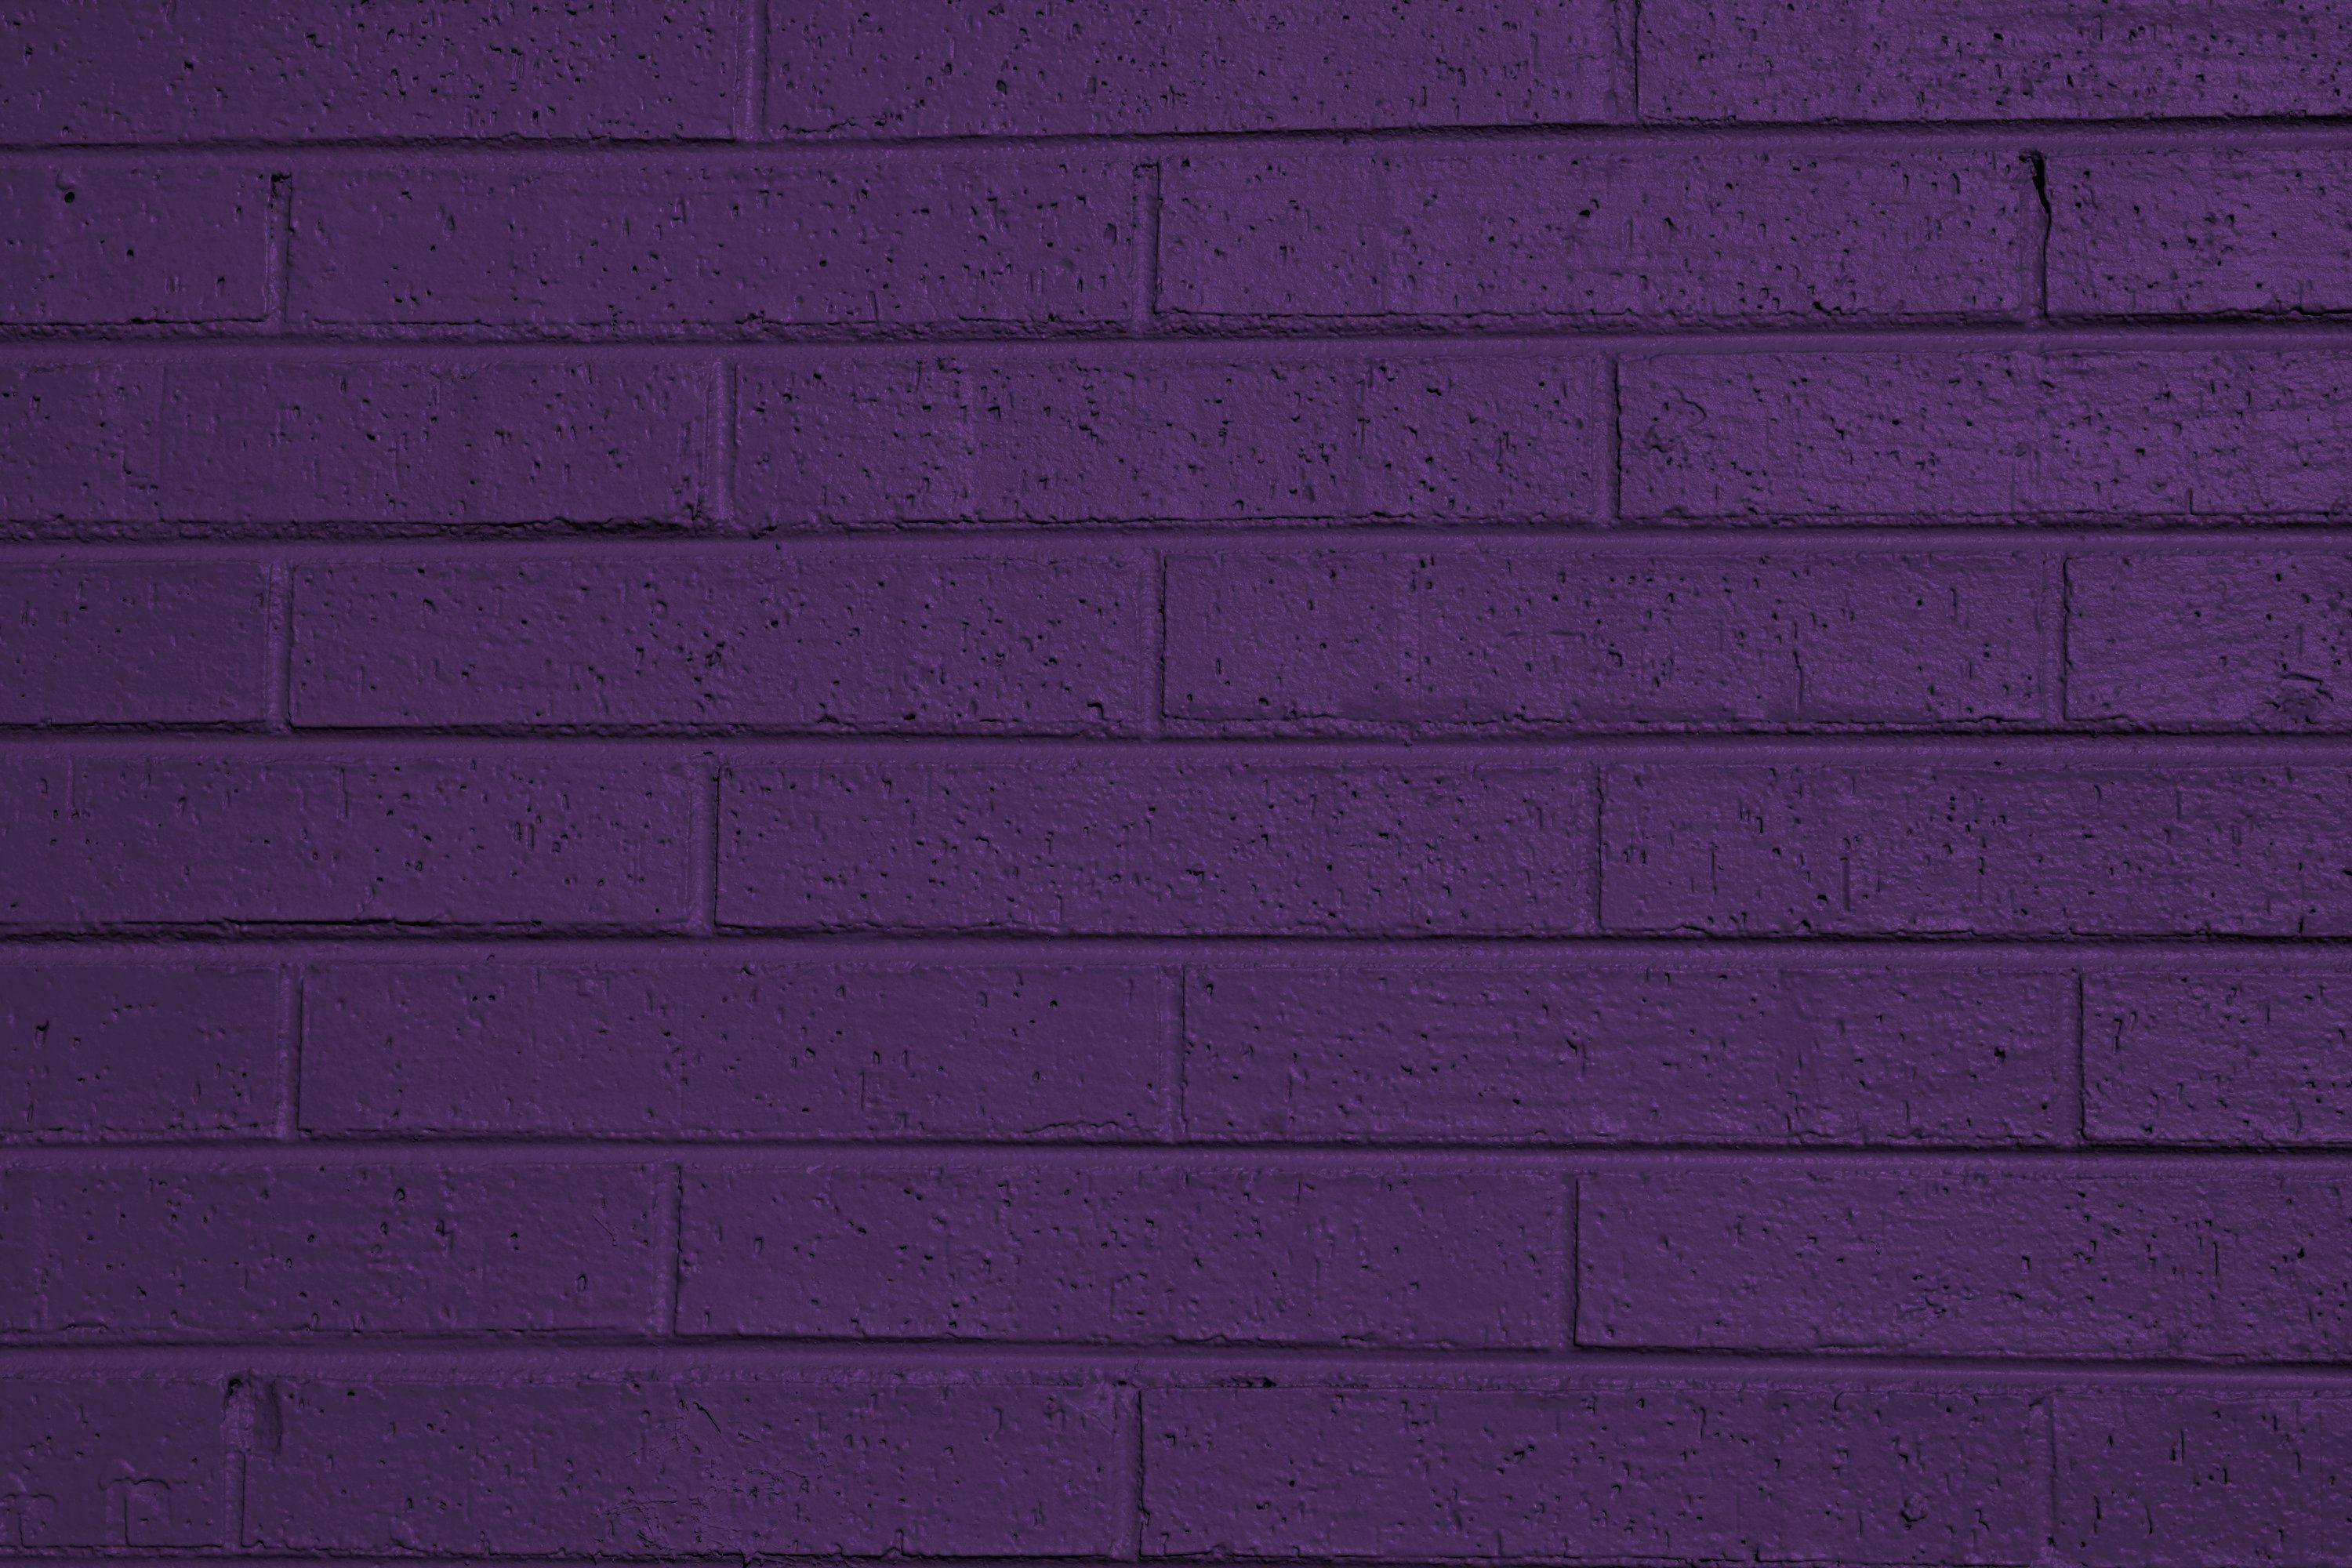 Deep Dark Purple Color - Music and Movie Wallpapers (20609 ...